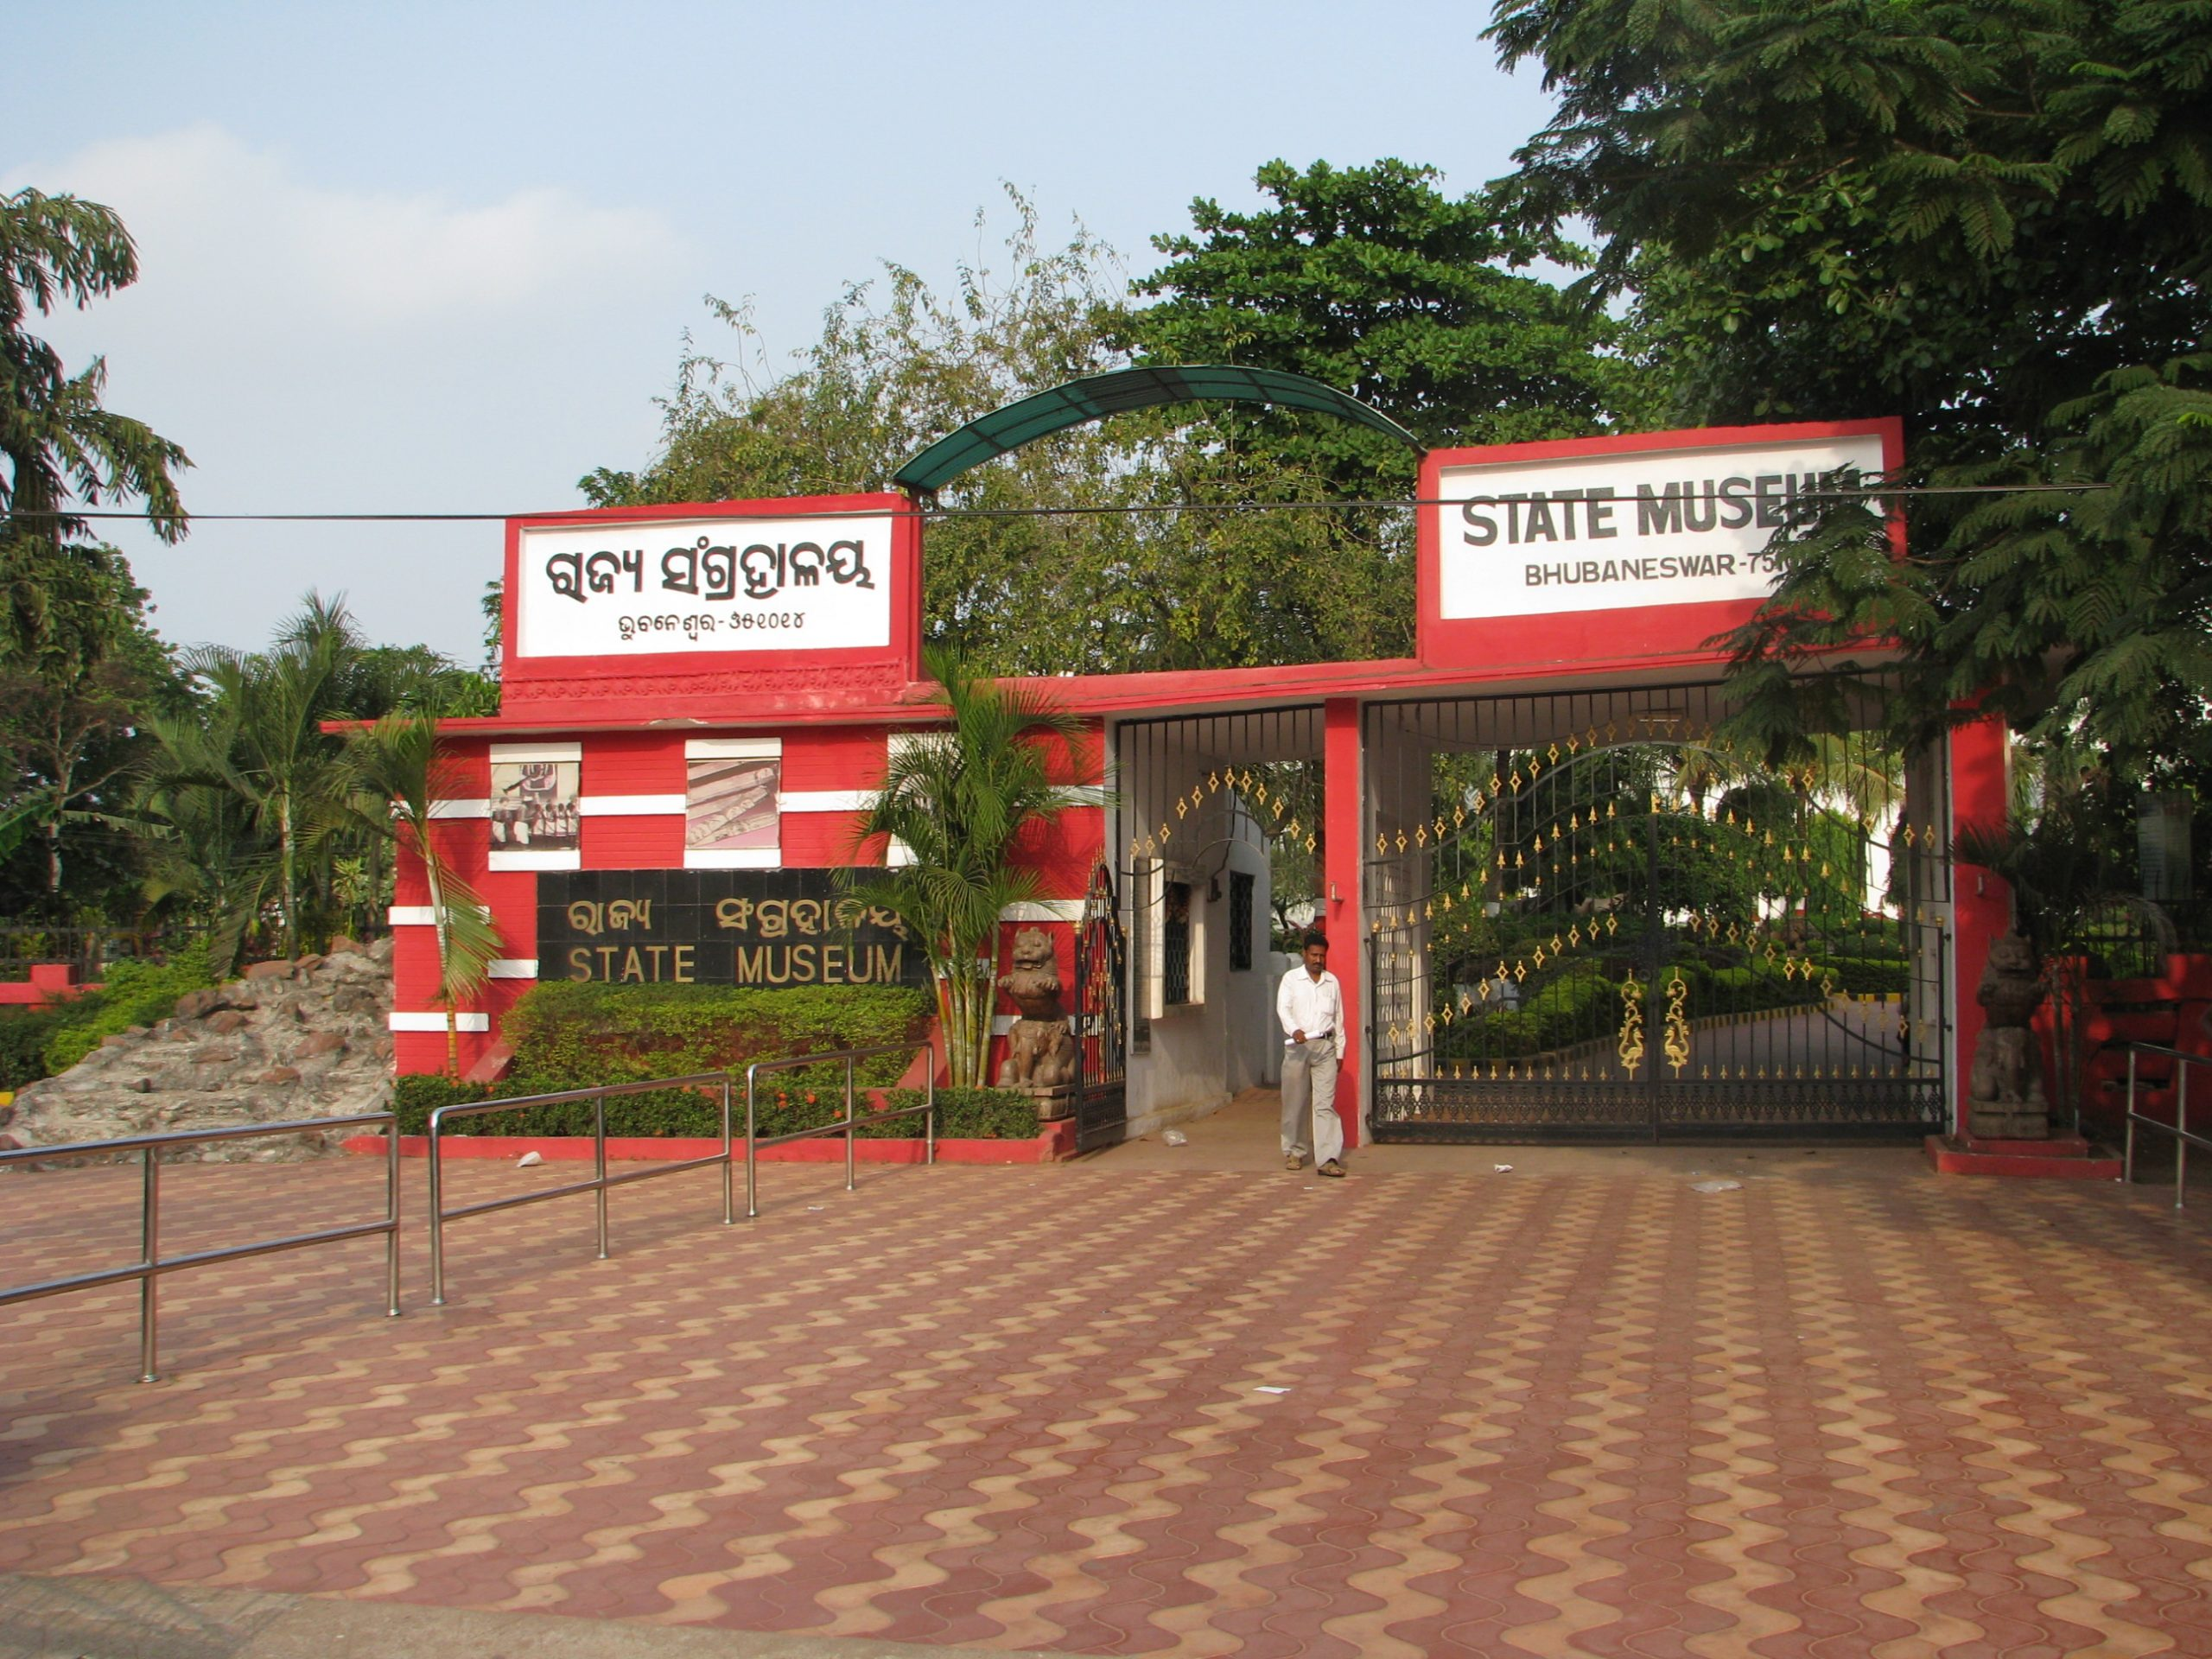 Odisha State Museum - Most Popular Place To Visit In Bhubaneswar